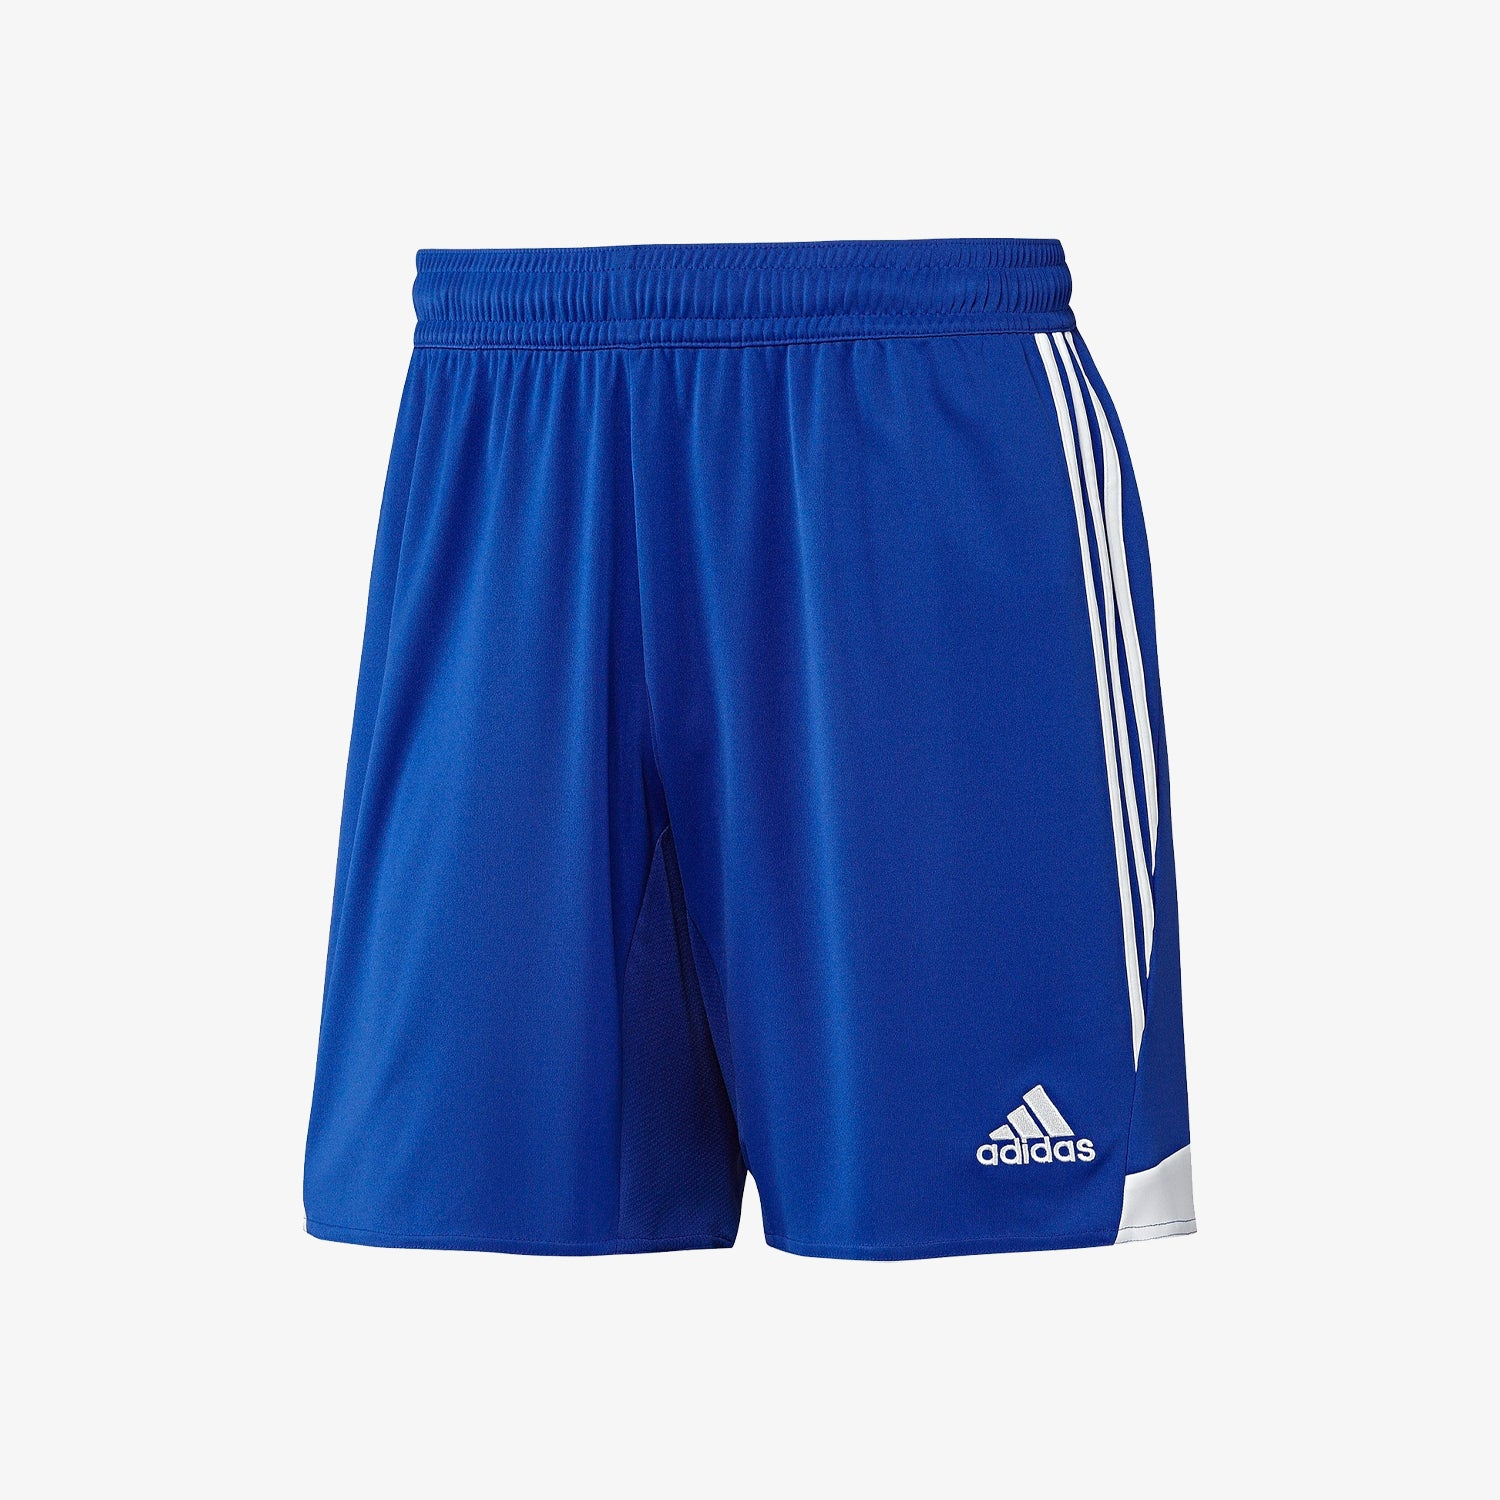 Kid's Tiro 13 Soccer Shorts - Royal